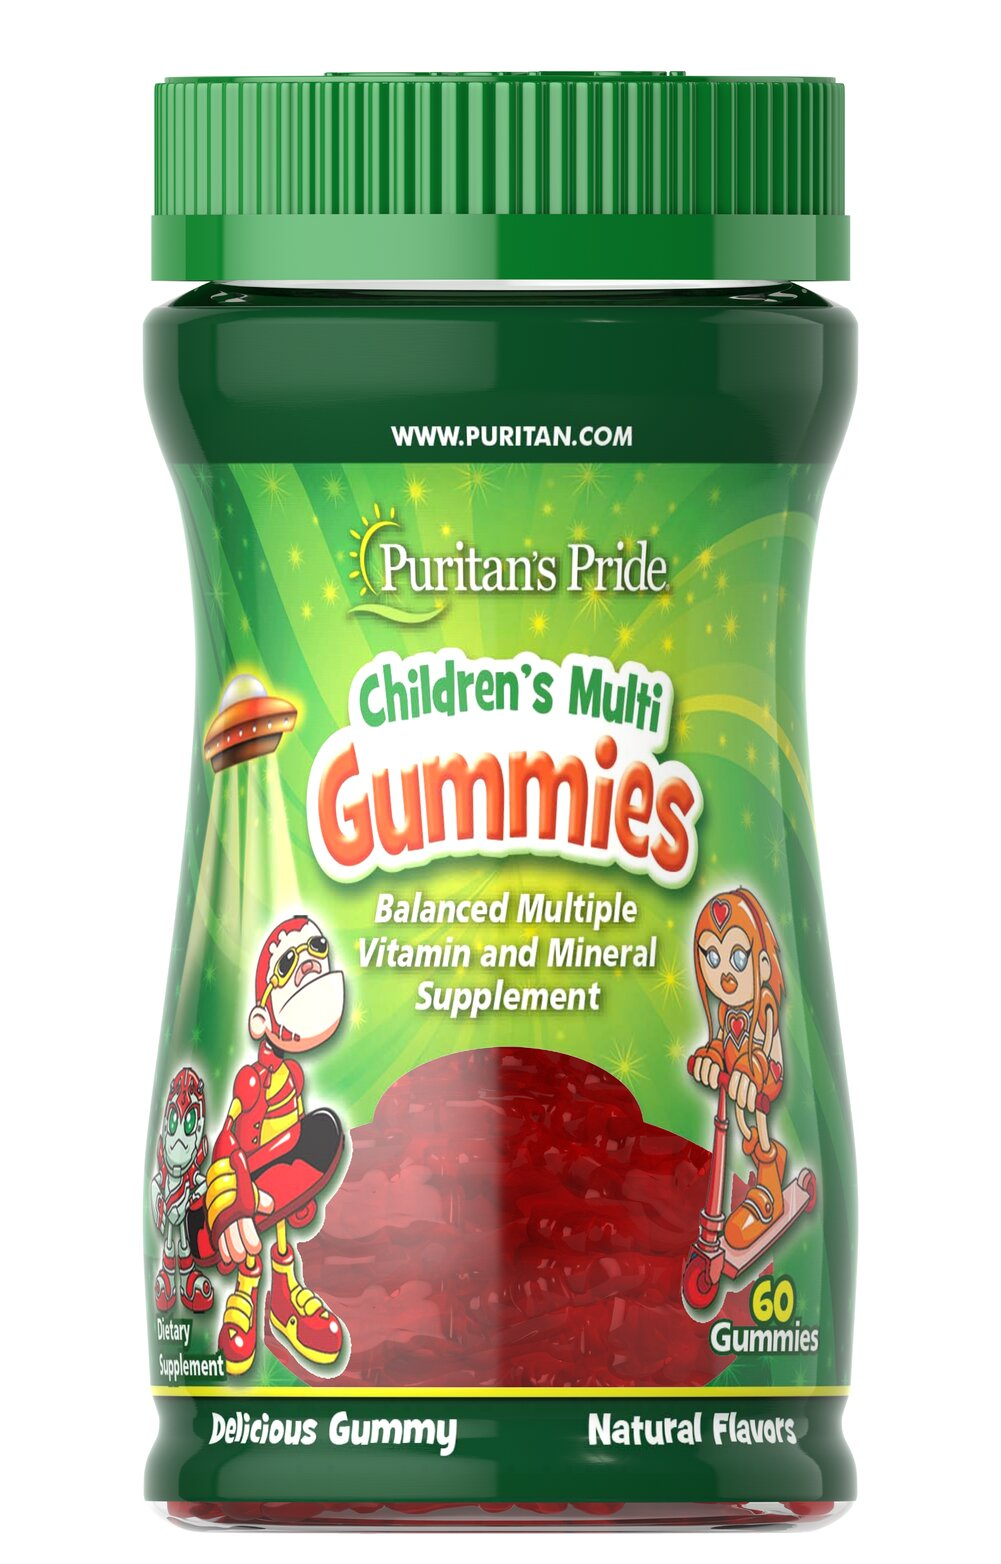 Children's Multivitamins & Minerals Gummies <p>These multivitamins gummies are packed with essential vitamins and minerals necessary for your child's healthy growth and development.** Included are Vitamin D for the bones, and Vitamins C and E for the immune system.**</p> 60 Gummies  $9.99